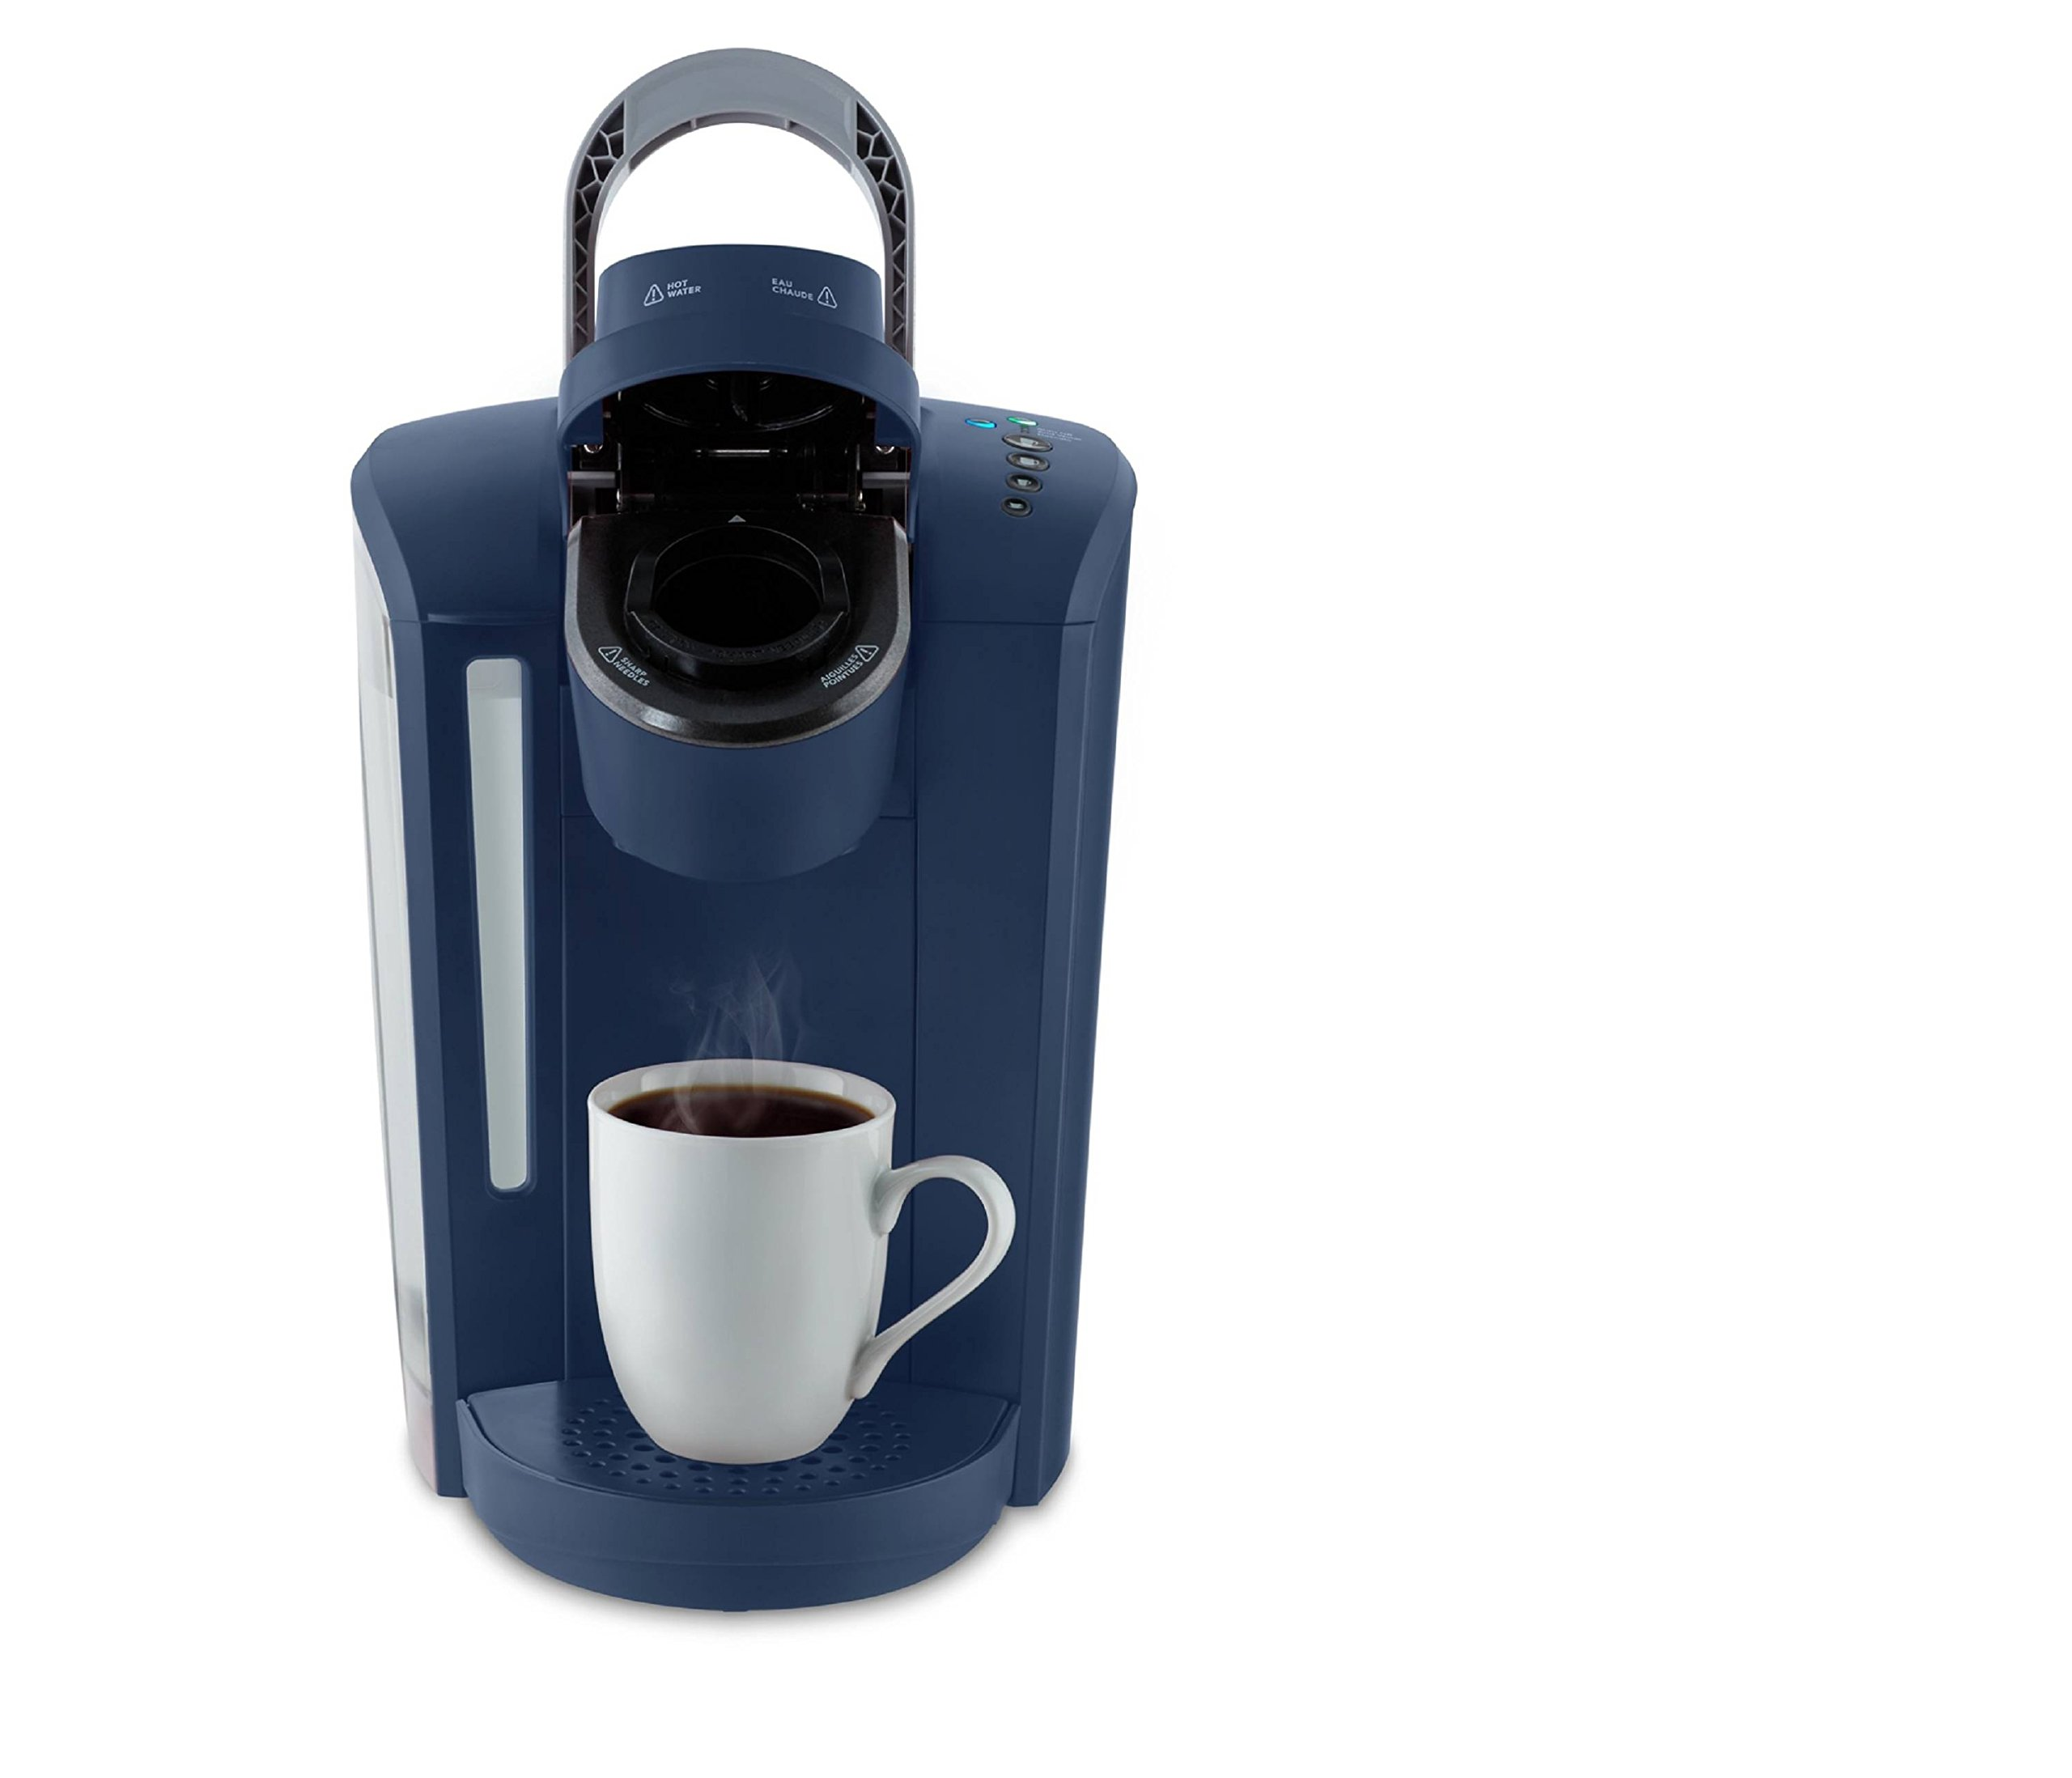 Keurig K-Select Single-Serve K-Cup Pod Coffee Maker, Matte Navy Blue by Keurig (Image #3)